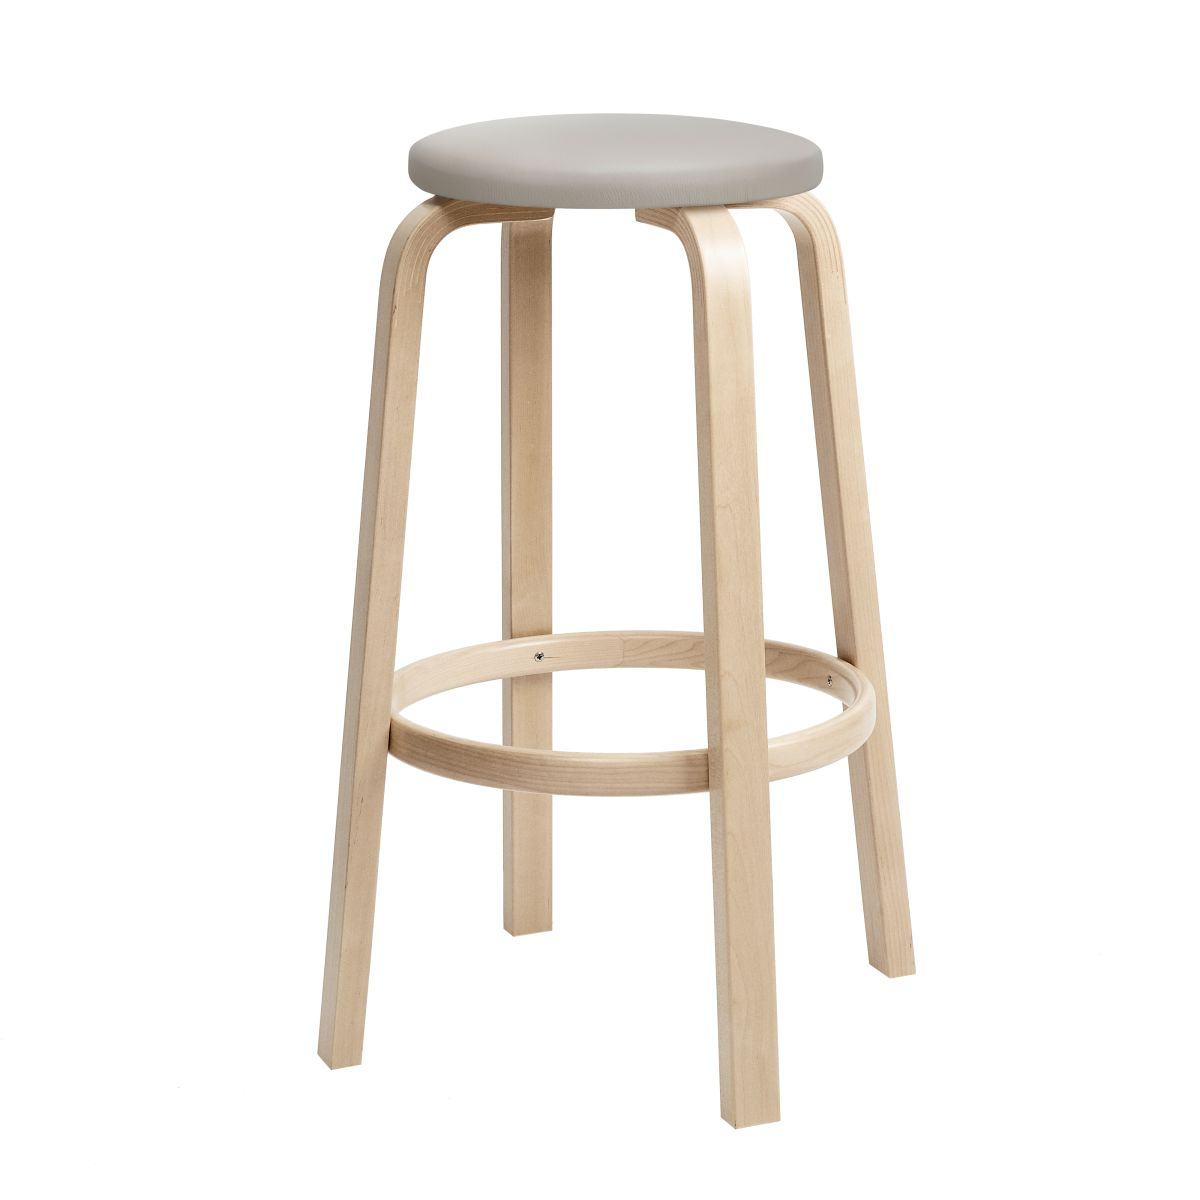 Bar-Stool-64-75cm-clear-lacquered-seat-leather-upholstery-padding_F-2912679